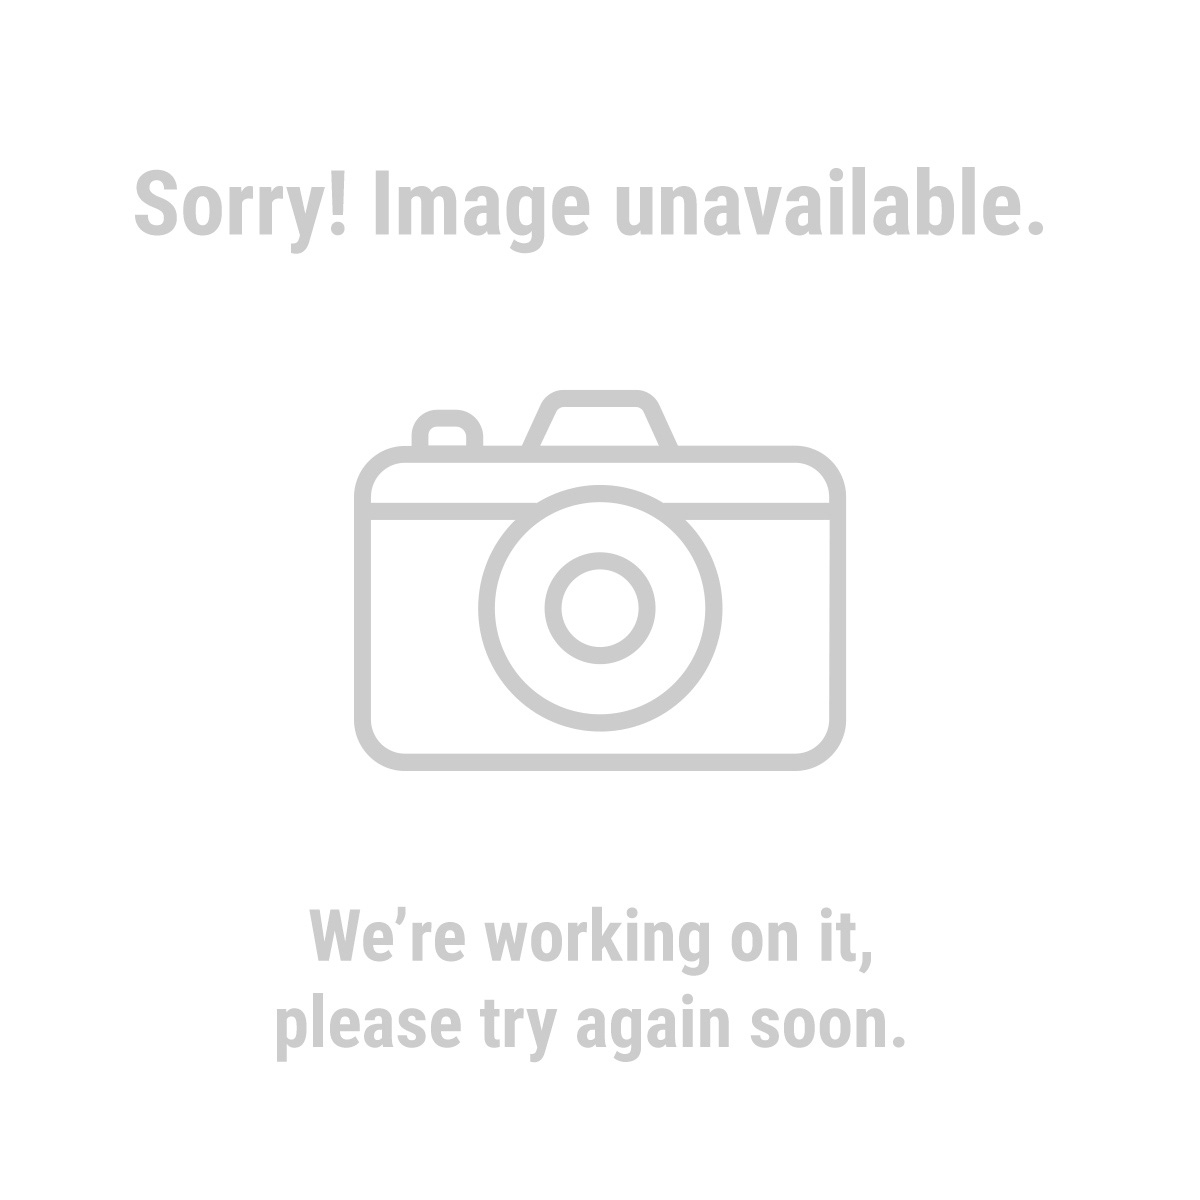 Maddox 63258 Ball Joint Service Kit for 2WD and 4WD Vehicles